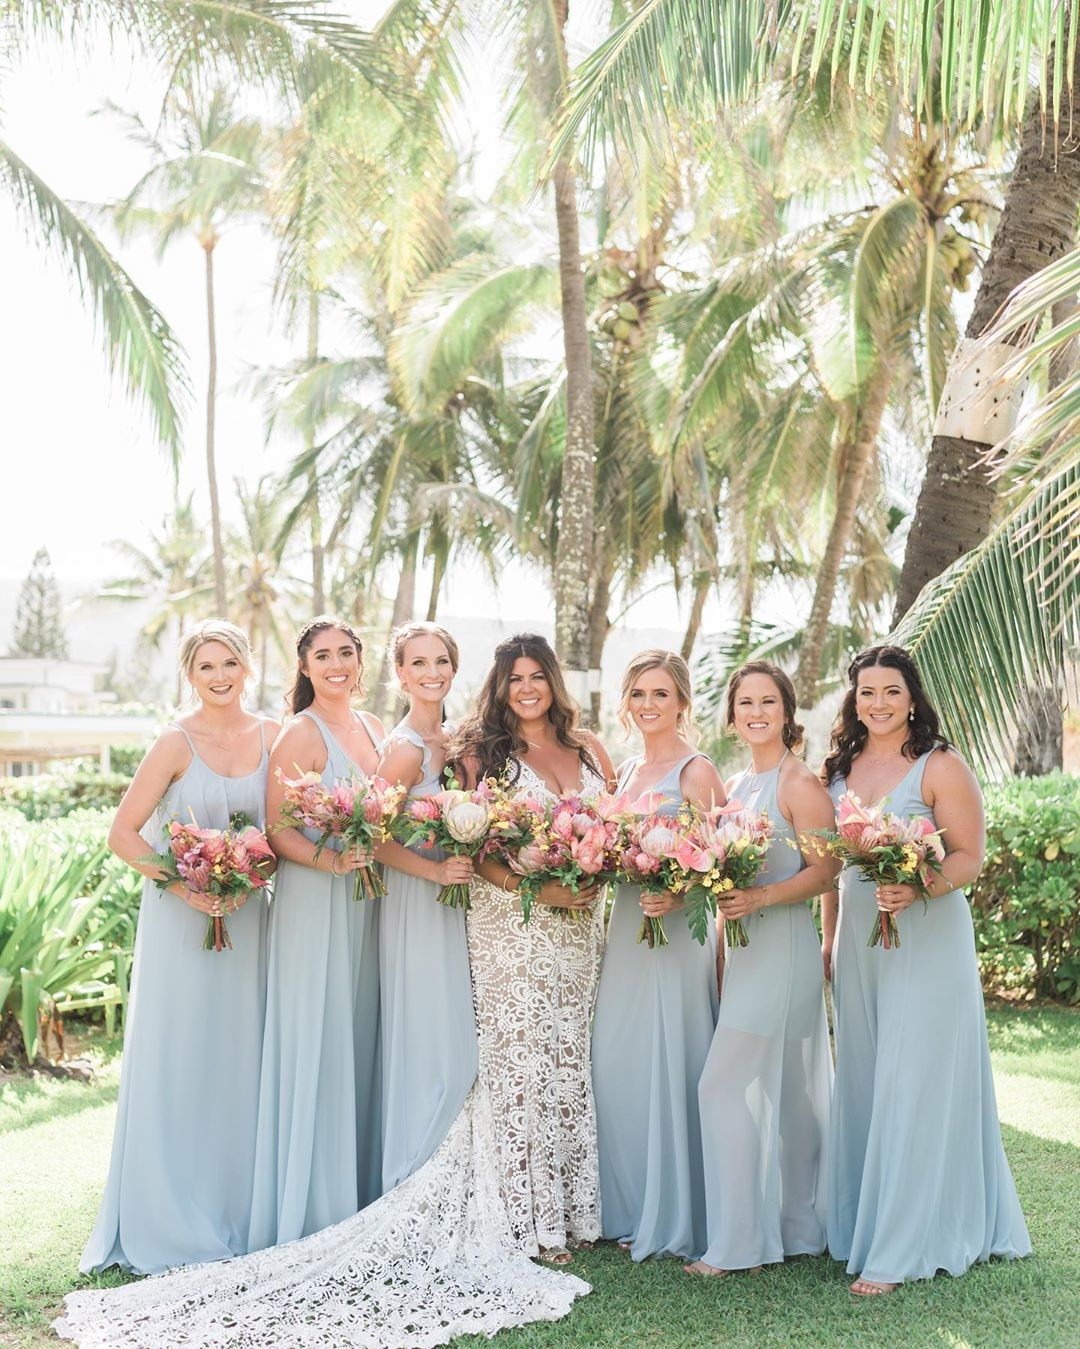 🌴A first look at Kasondra & Tom's wedding day near Haleiwa at this stunning private estate 💕